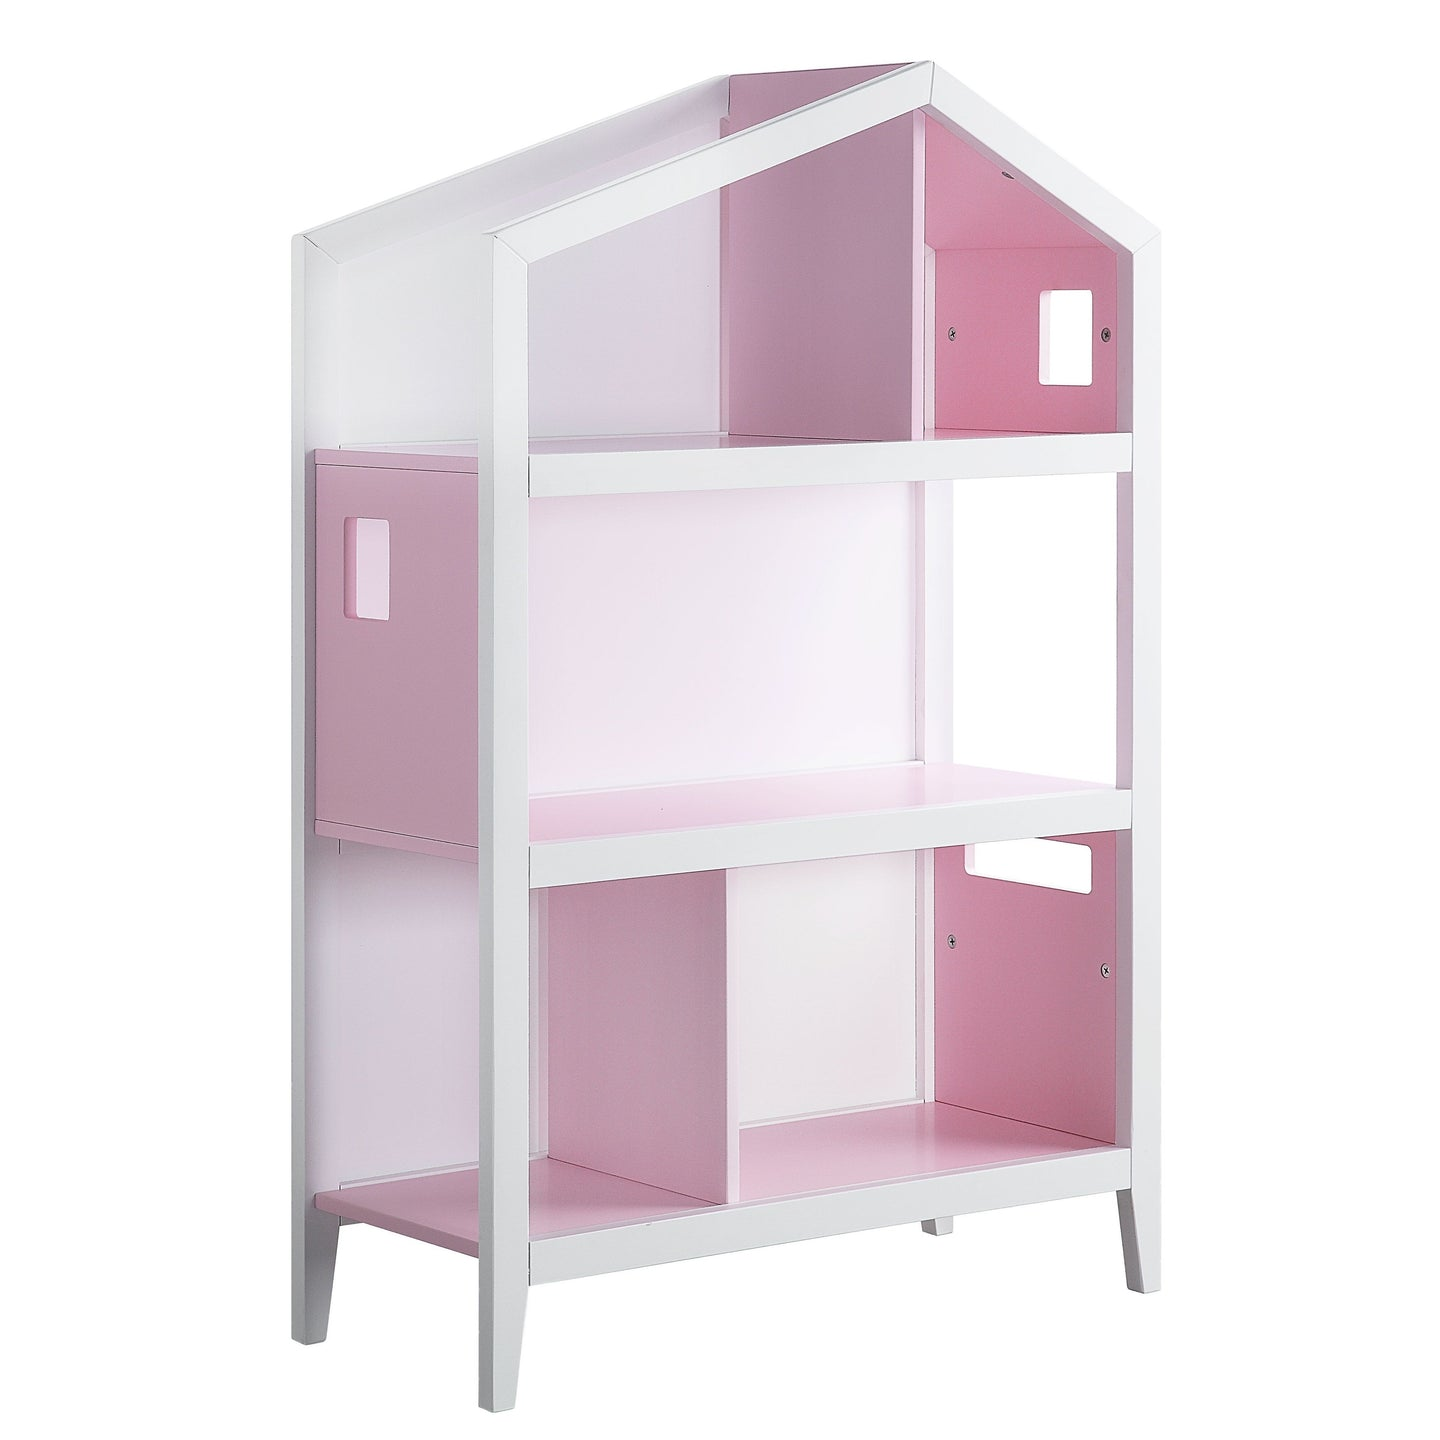 Acme 92560 Doll Cottage White Pink Wood Finish Kids Bookcase